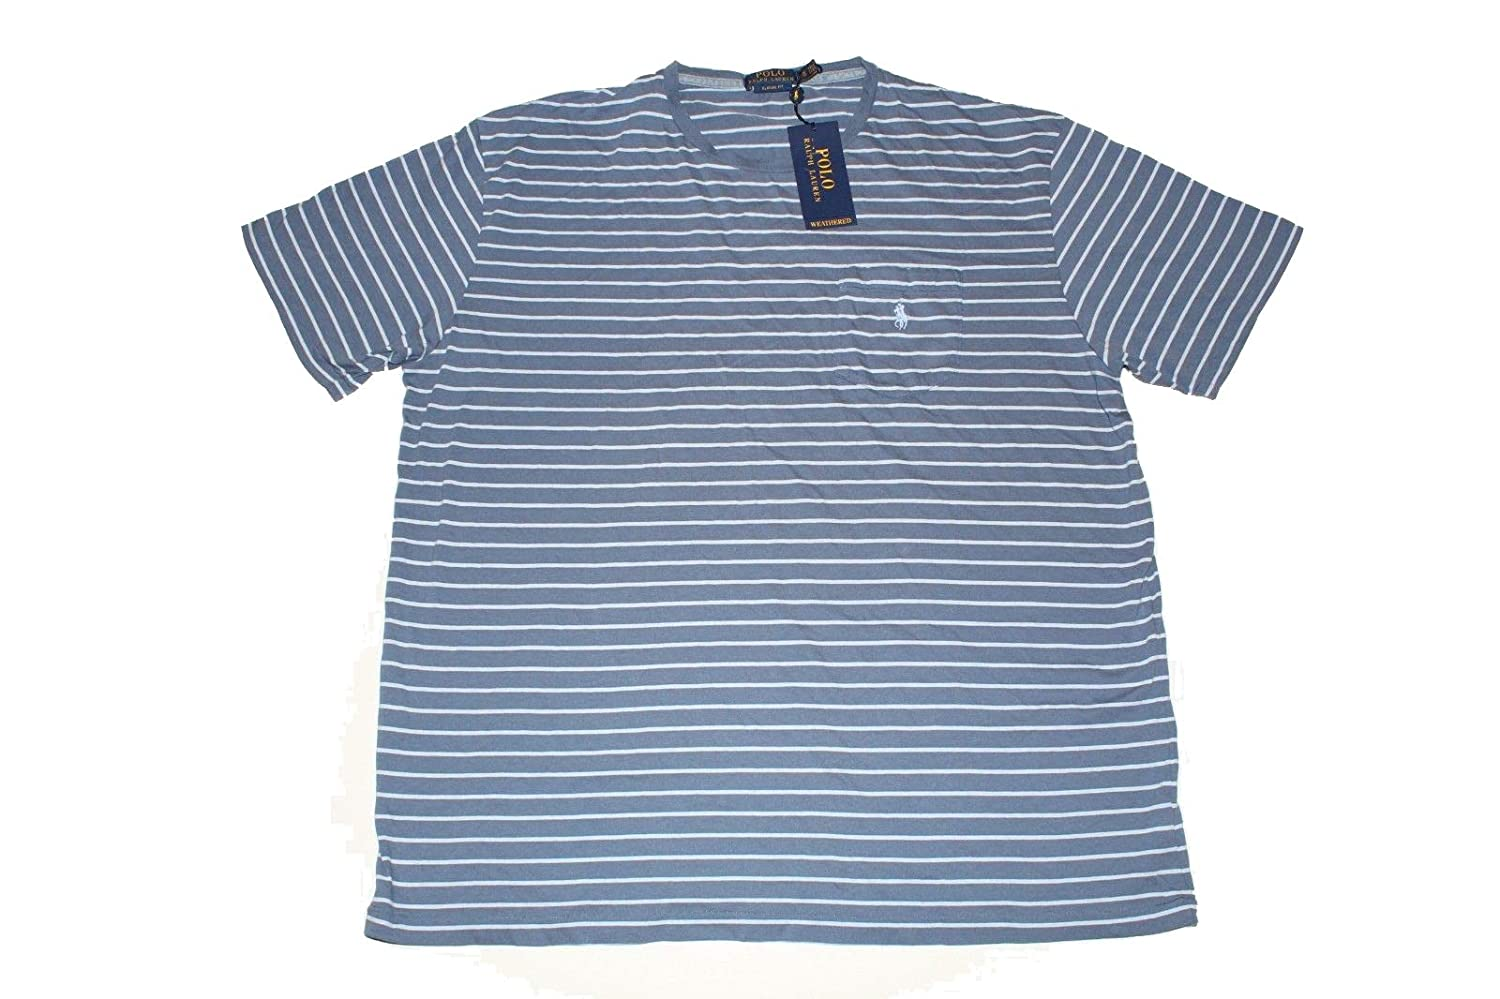 Classic T Pocket Ralph Polo Lauren Men's Striped Fit Shirtlight H2IW9EDY